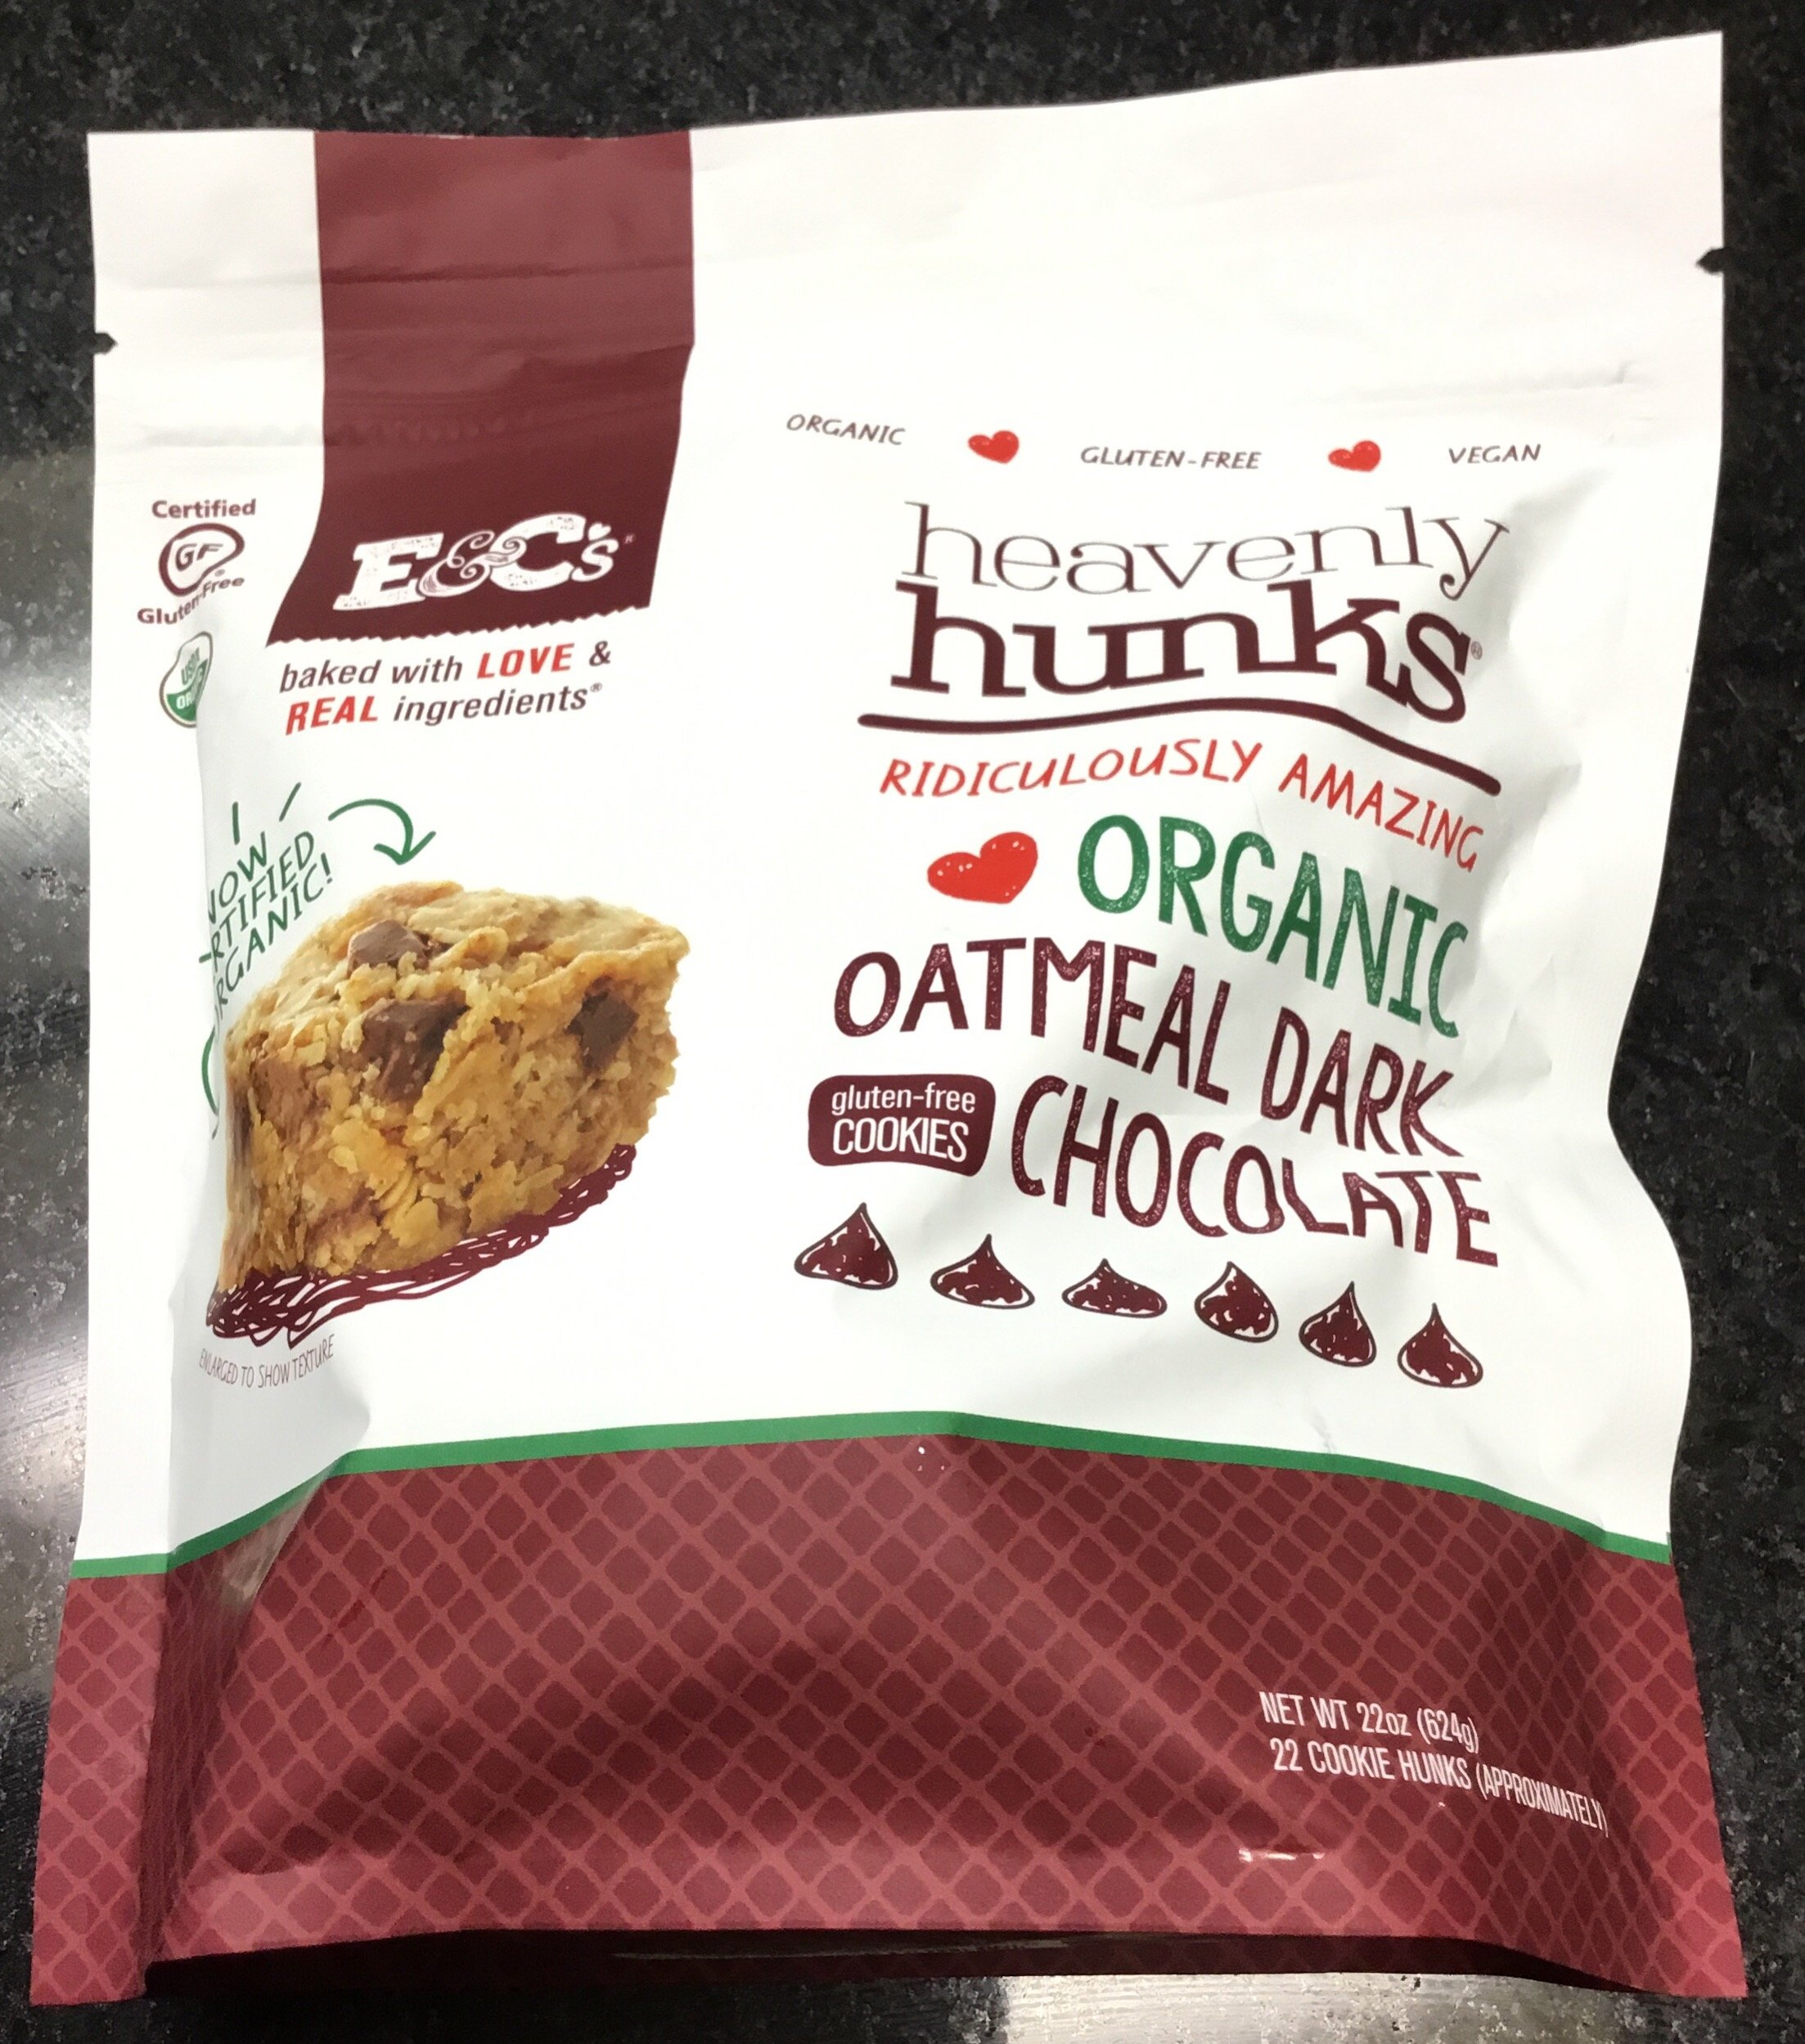 Heavenly Hunks Organic Oatmeal Dark Chocolate 22 oz. by Heavenly Hunks